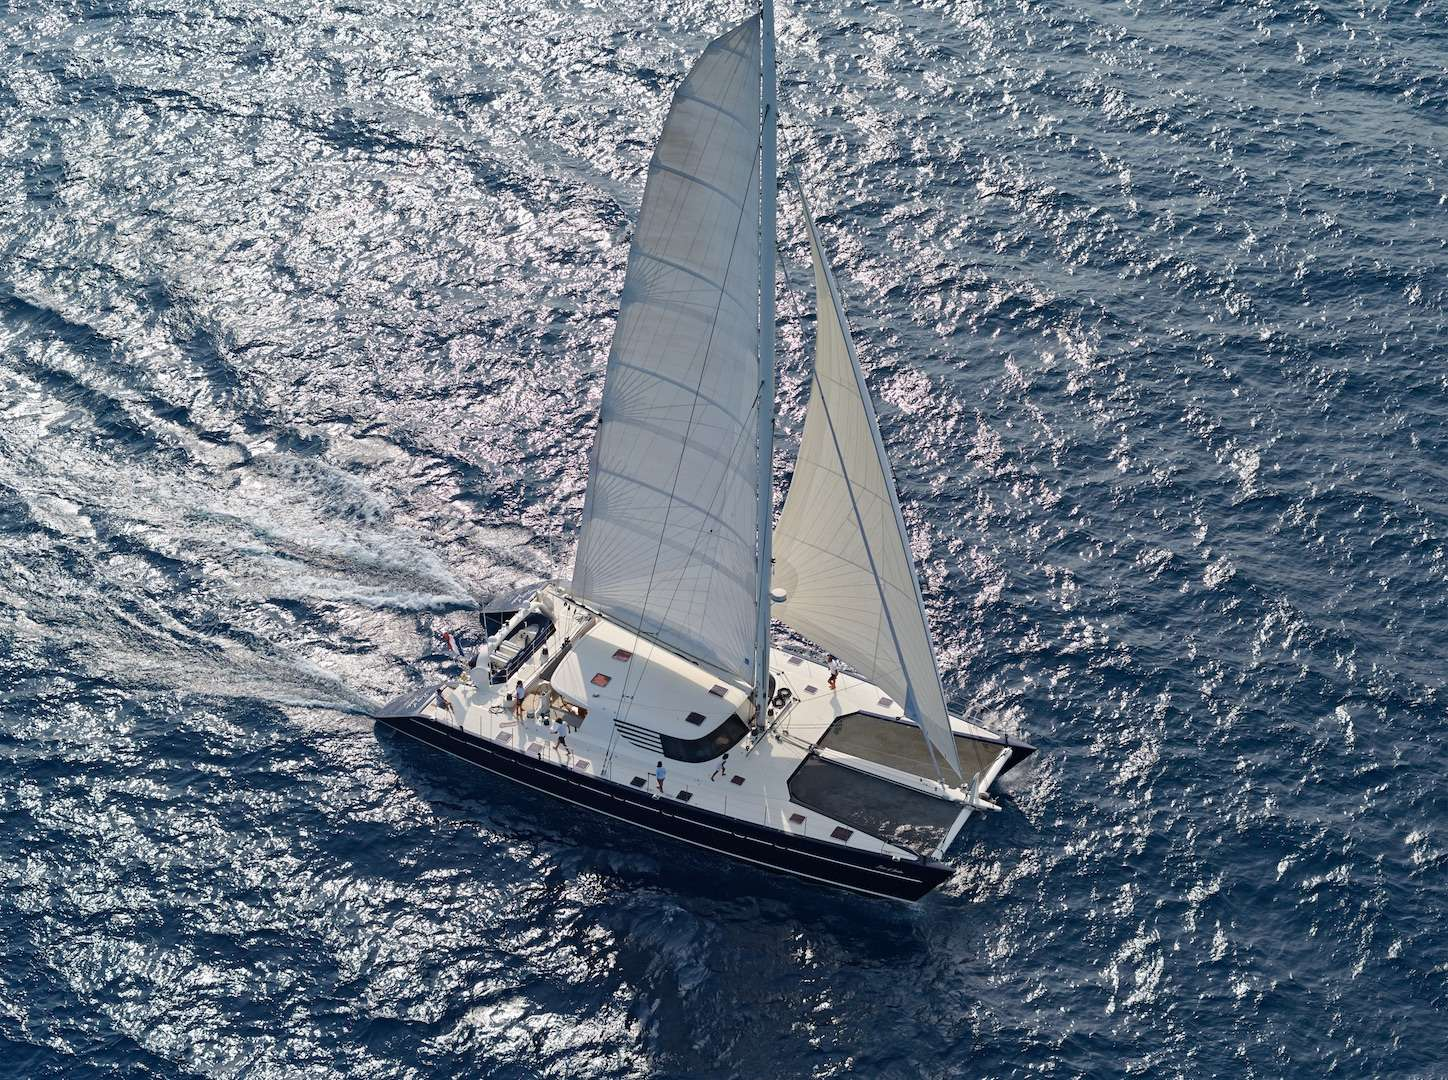 Charter with AZIZAM on compassyachtcharters.com